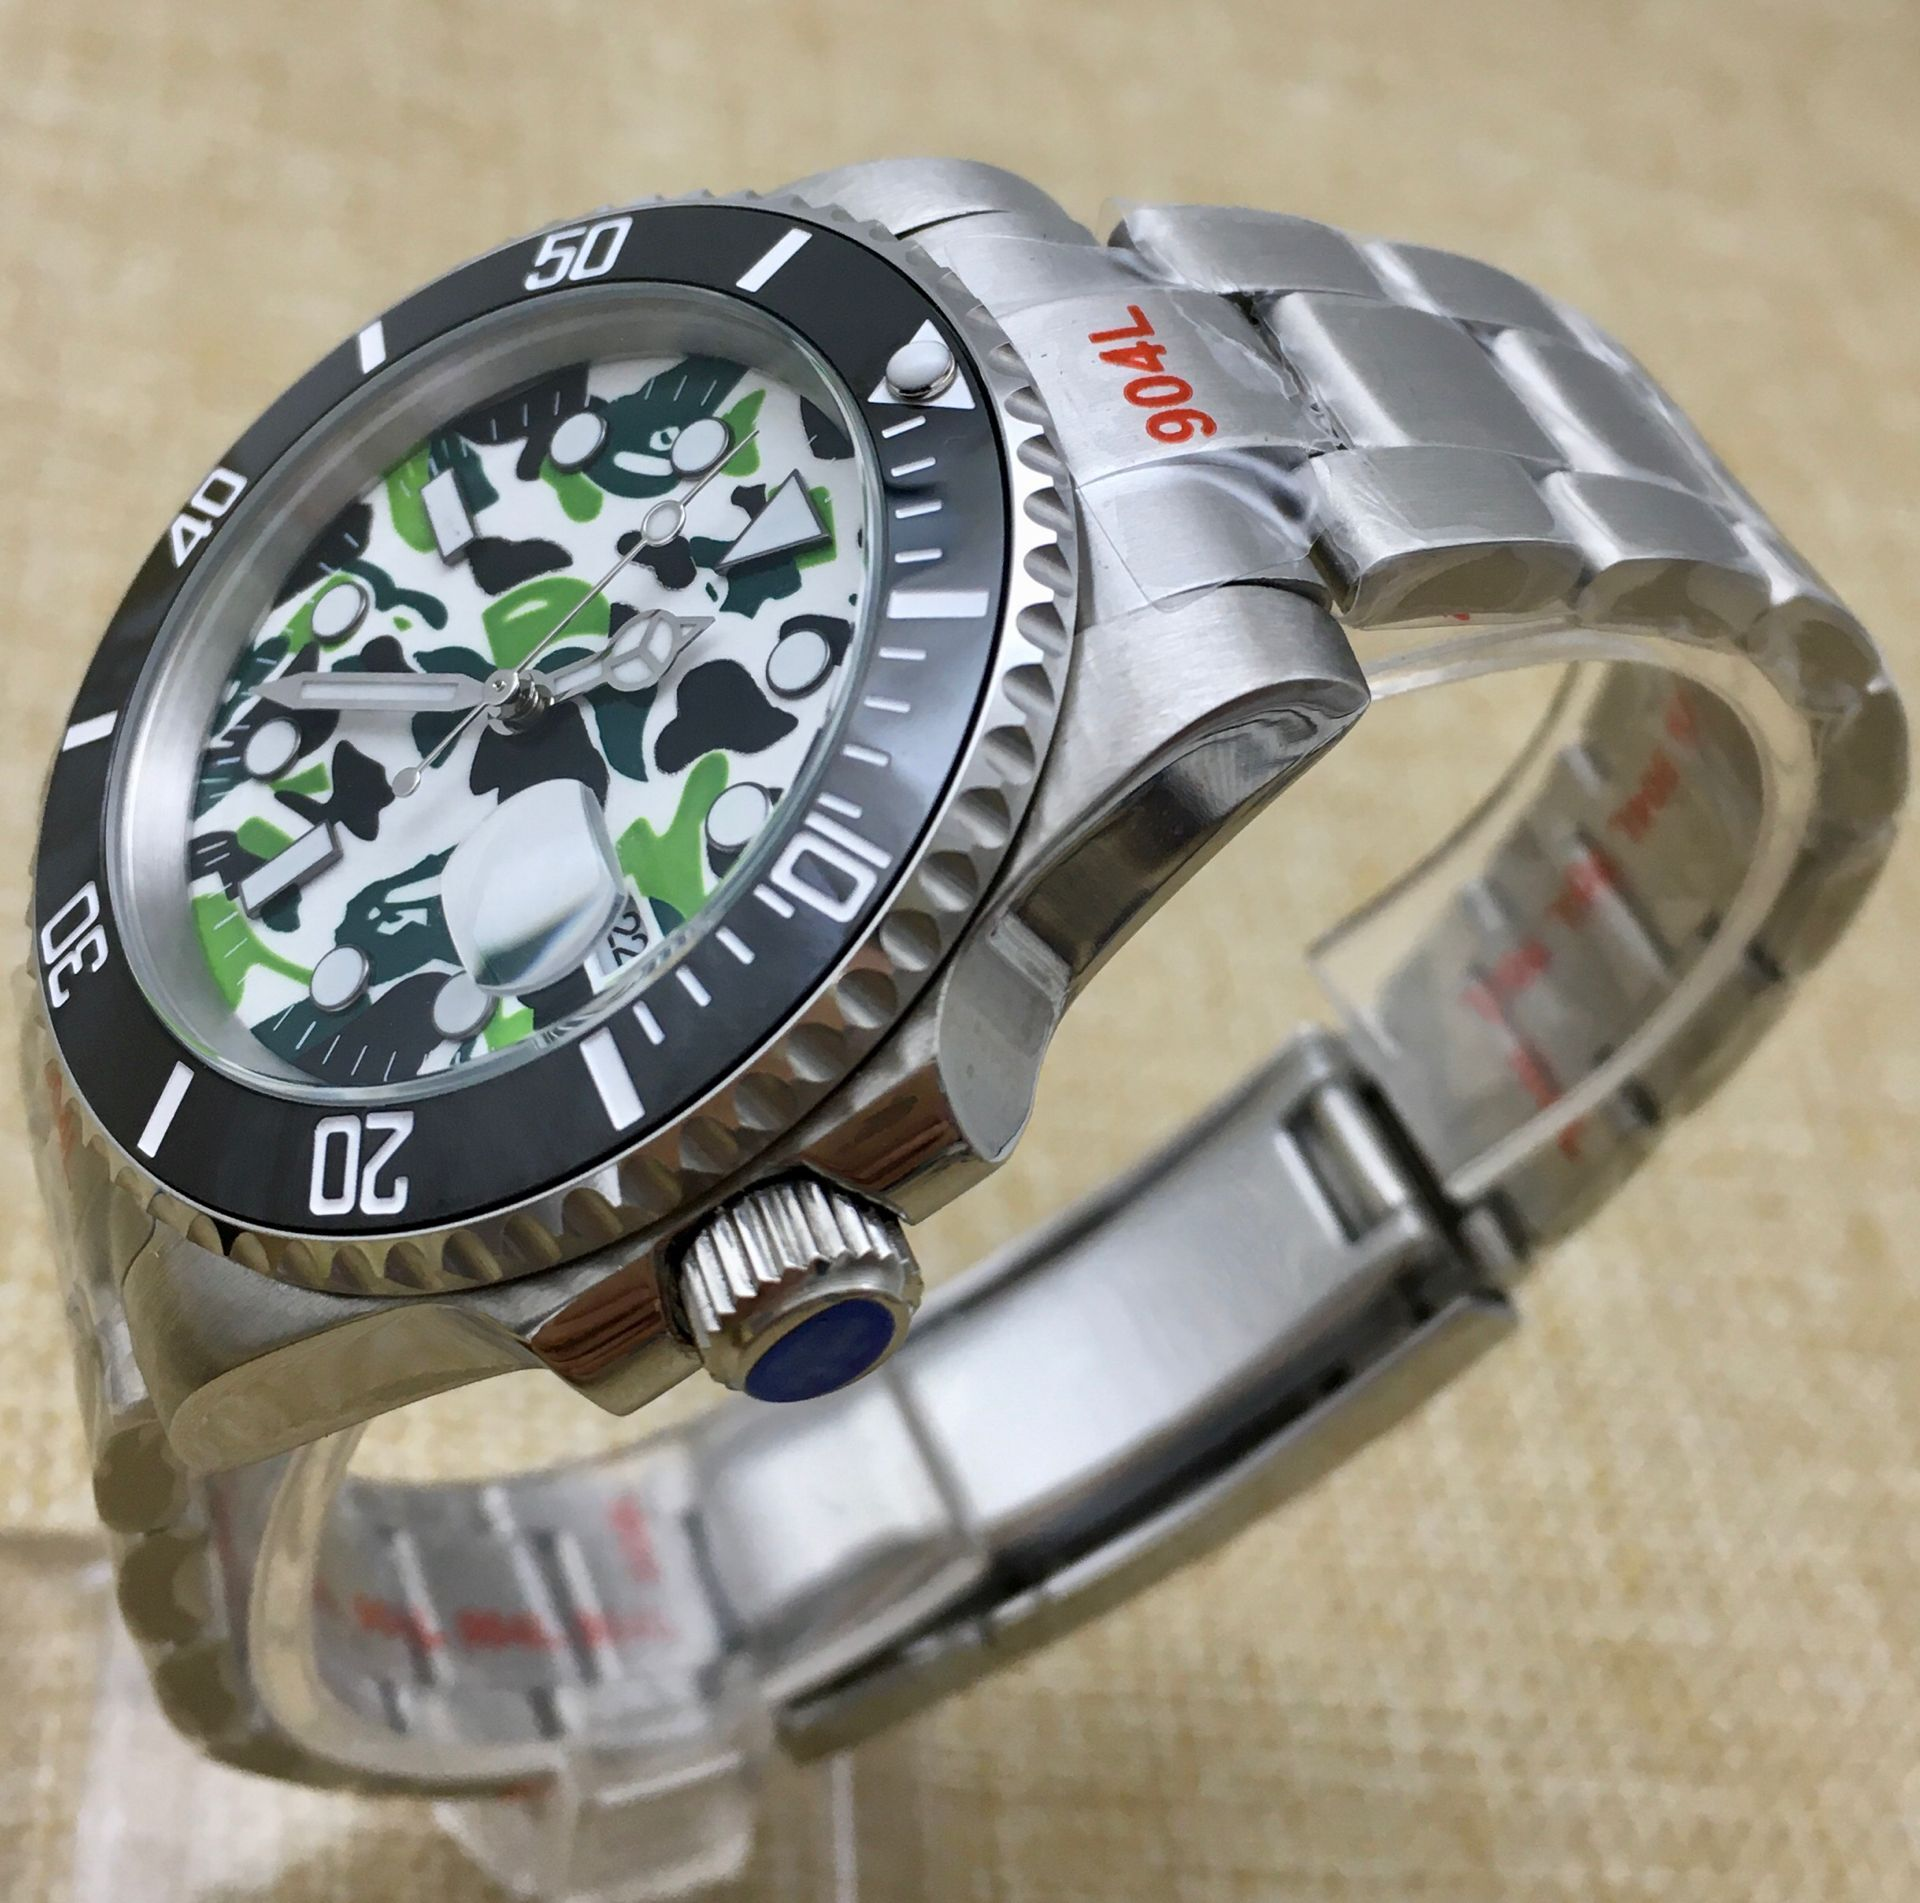 Fashion Green Camouflage Dial Luminous Sports Men's Watch Automatic Watch Mechanical Stainless Steel Case Bracelet enlarge